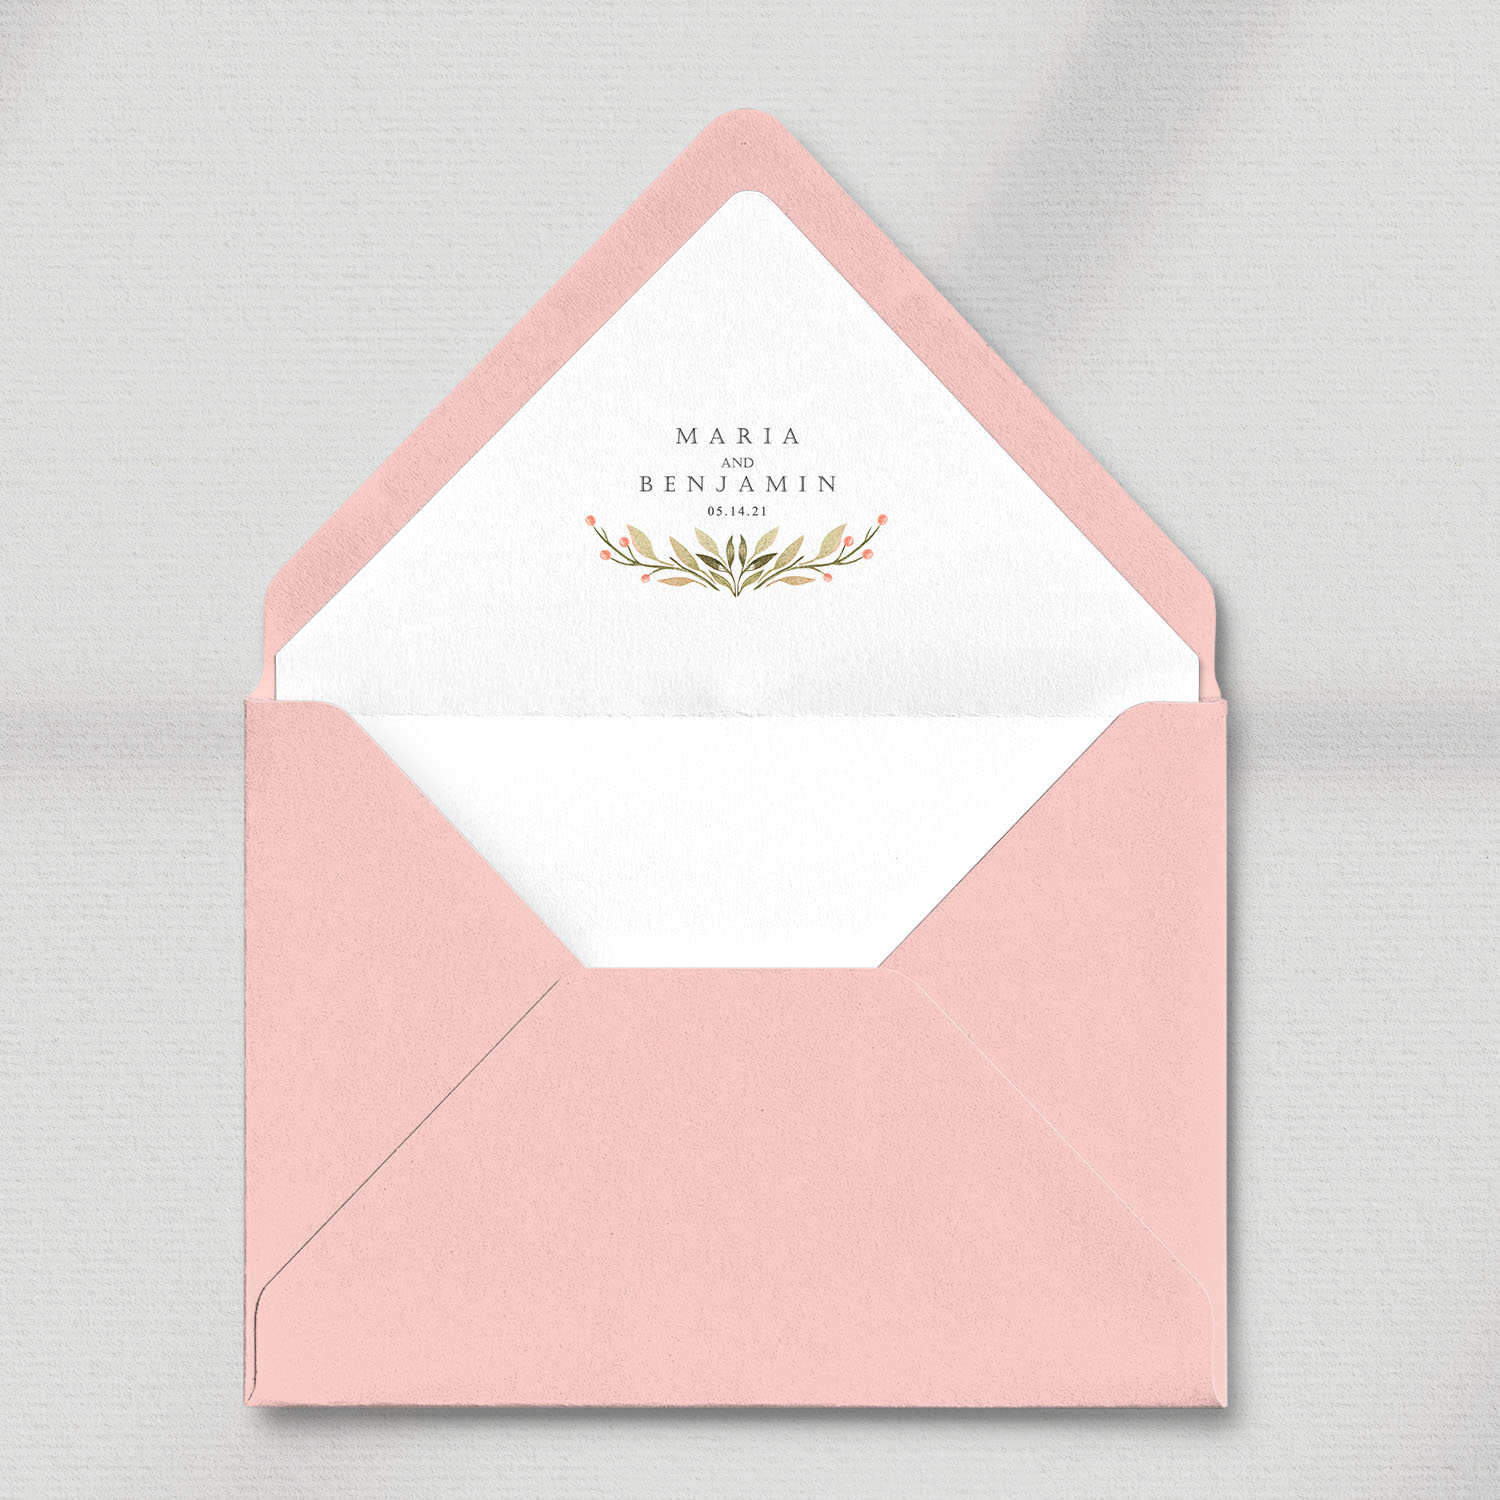 envelope with white liner